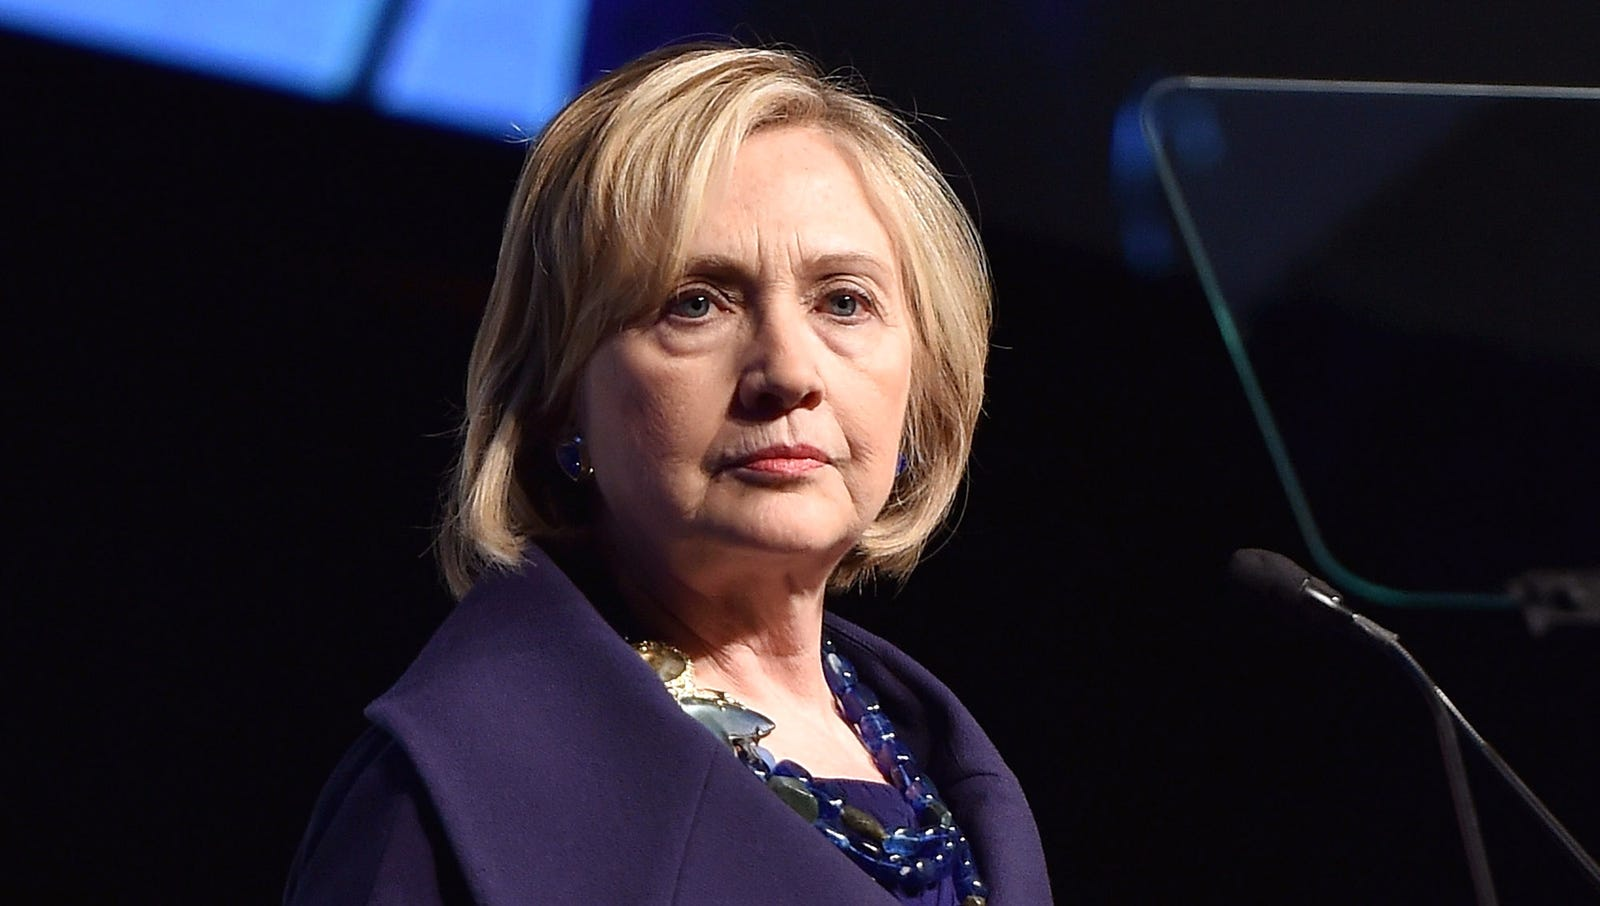 Hillary Clinton Hints At Presidential Ambitions By Concealing Information From American People